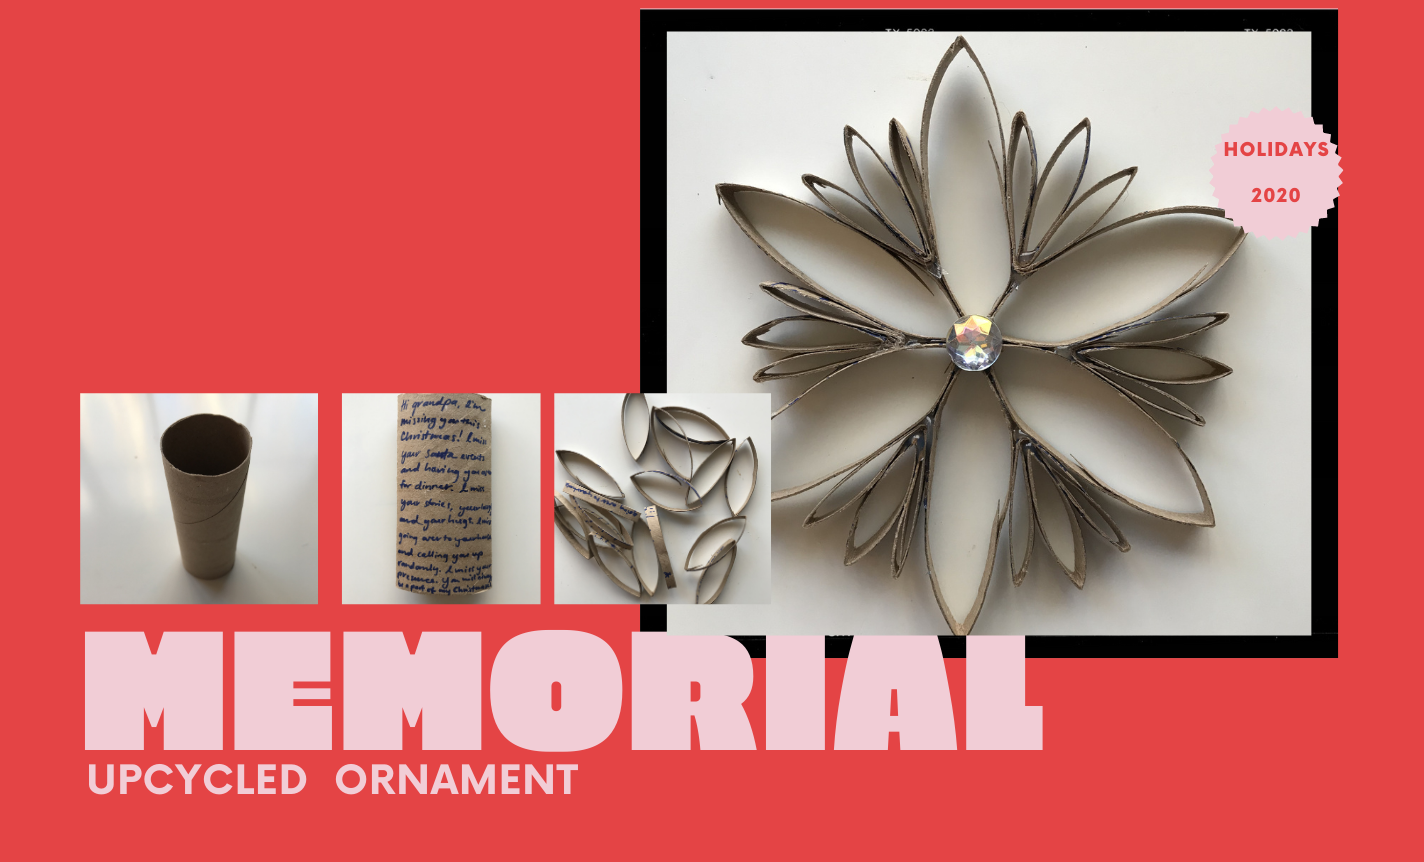 Upcycled Memorial Ornaments